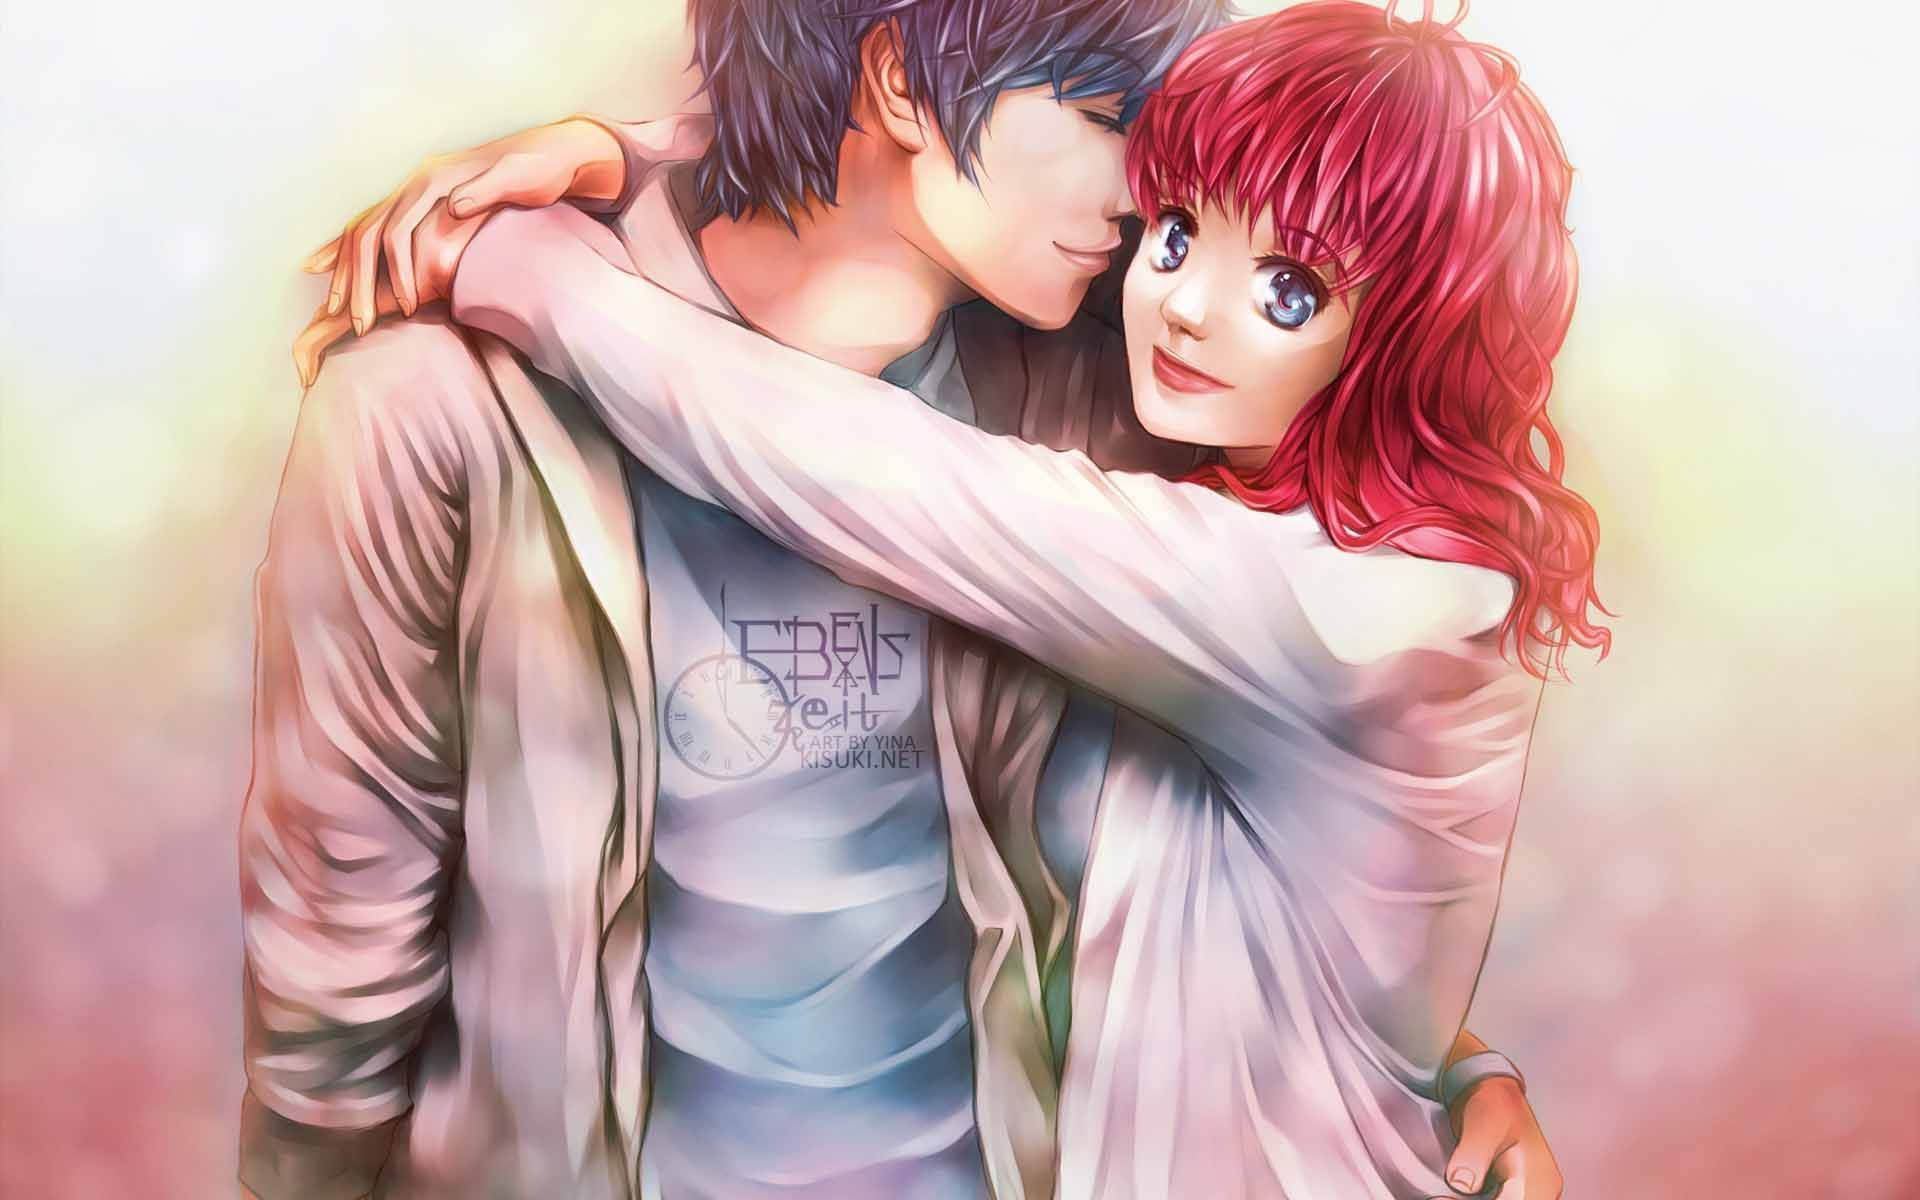 Anime Romance Love Wallpapers Top Free Anime Romance Love Backgrounds Wallpaperaccess